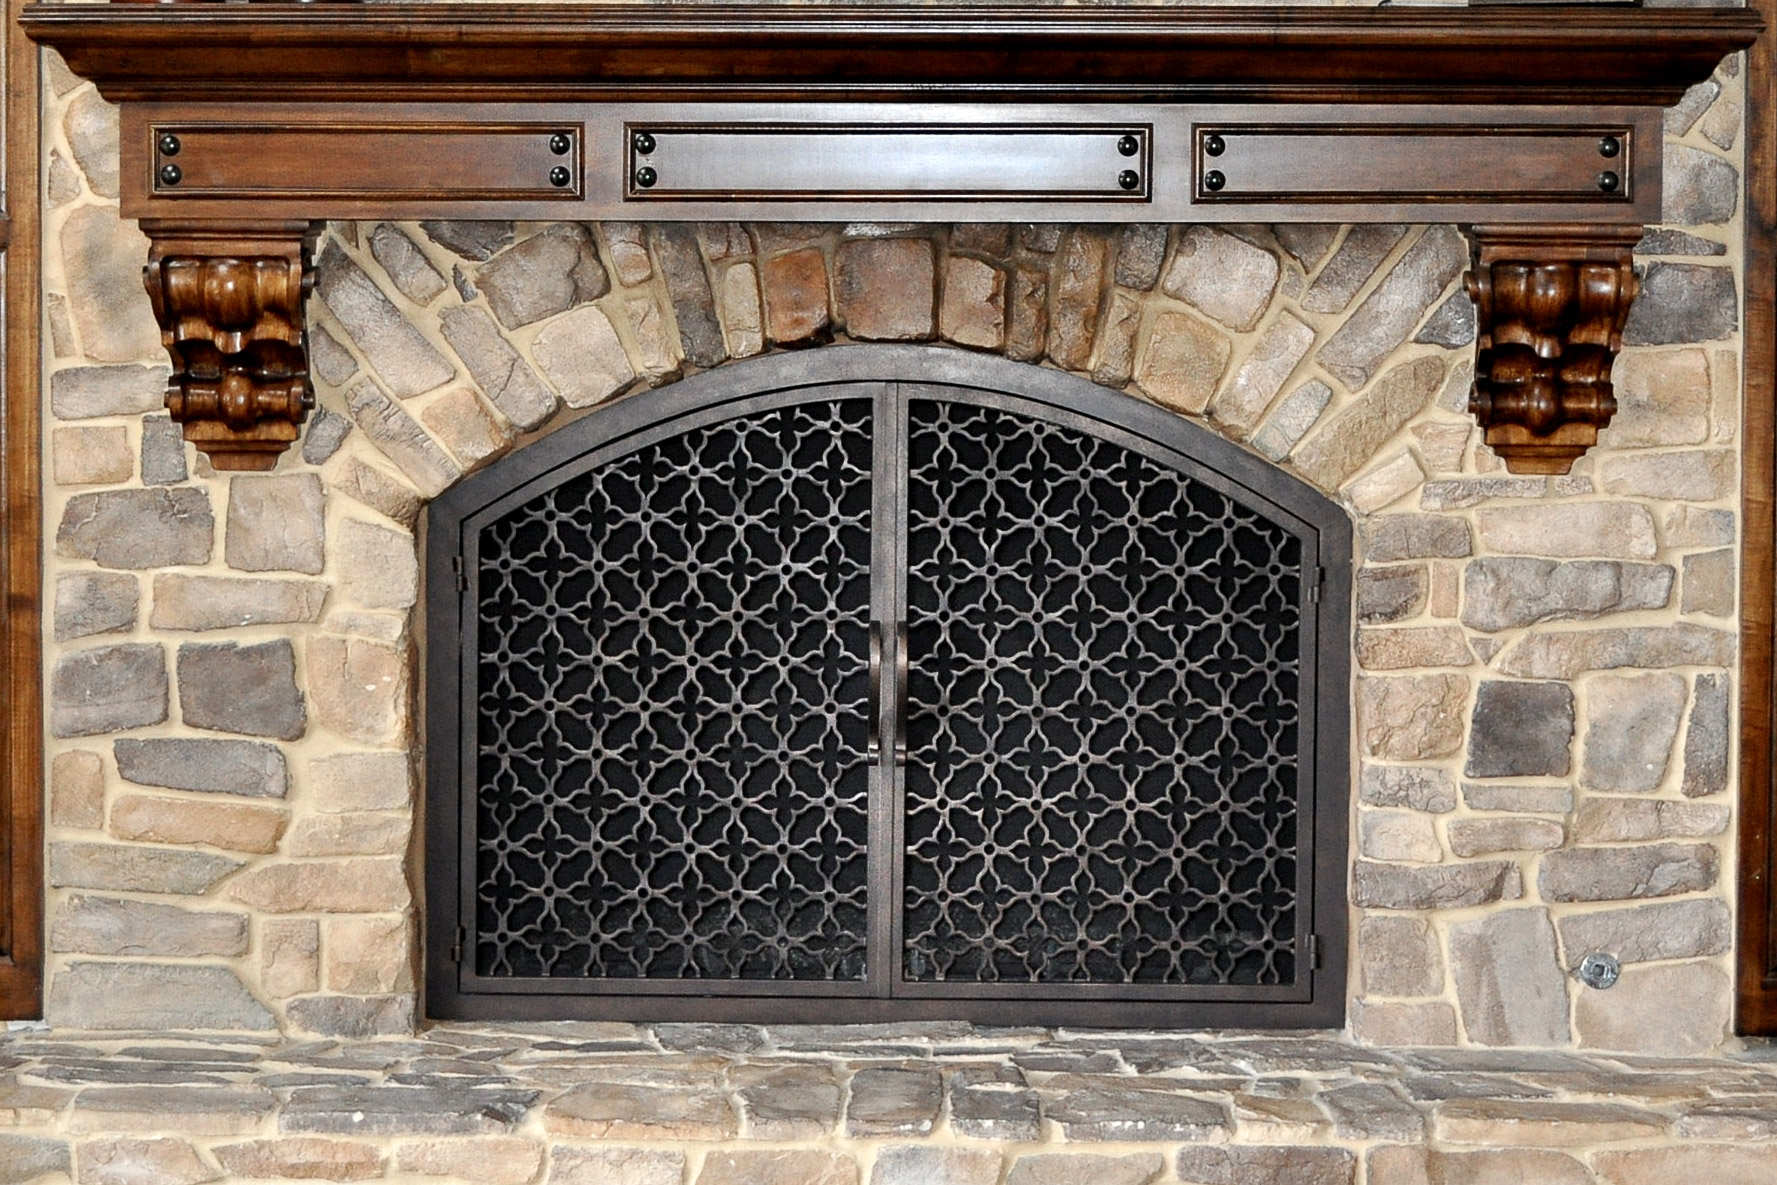 Batista 11 Arch Fireplace Door